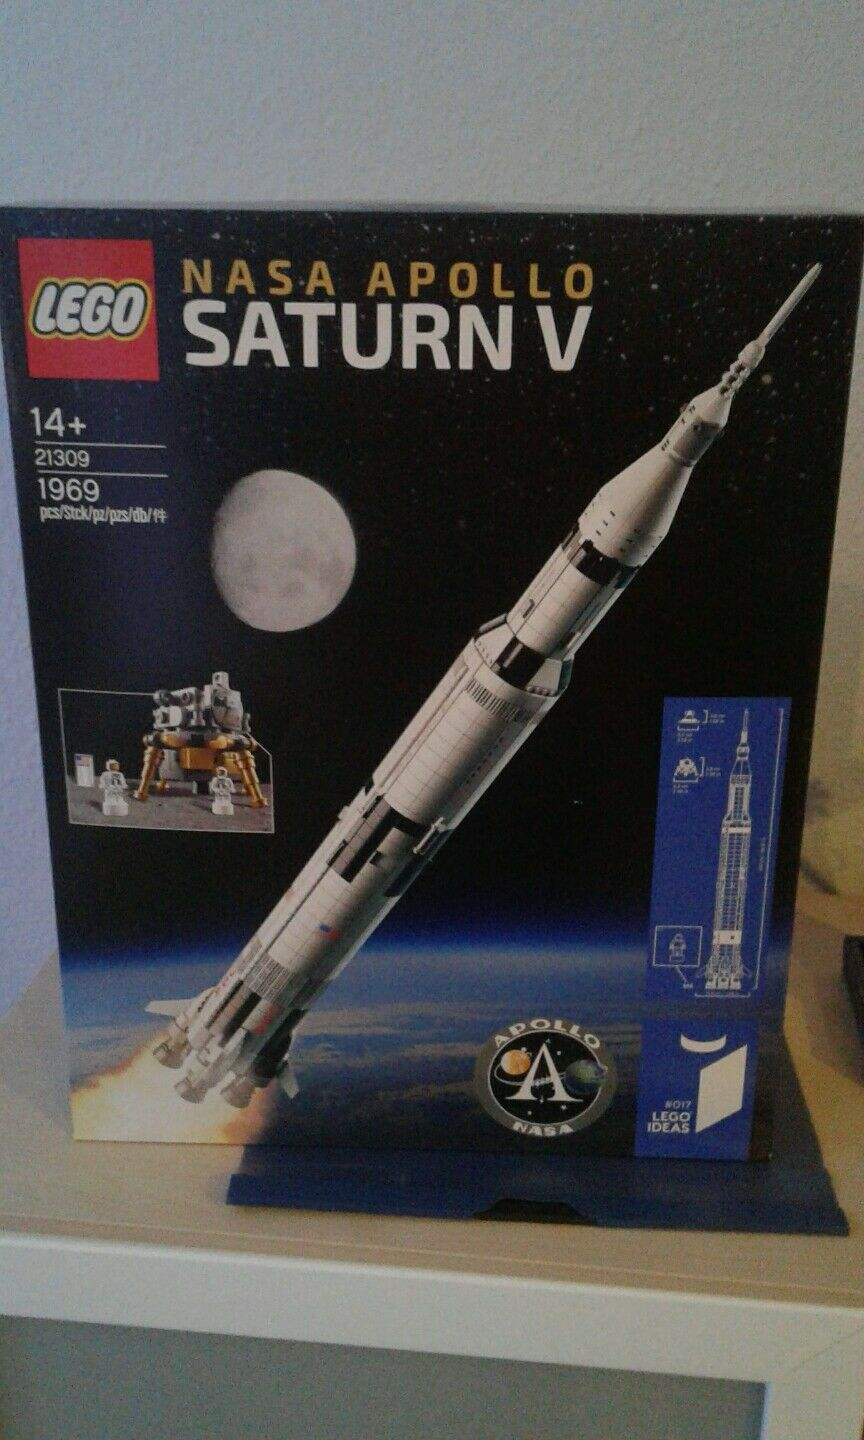 Lego 21309 nasa apollo saturn v rakete